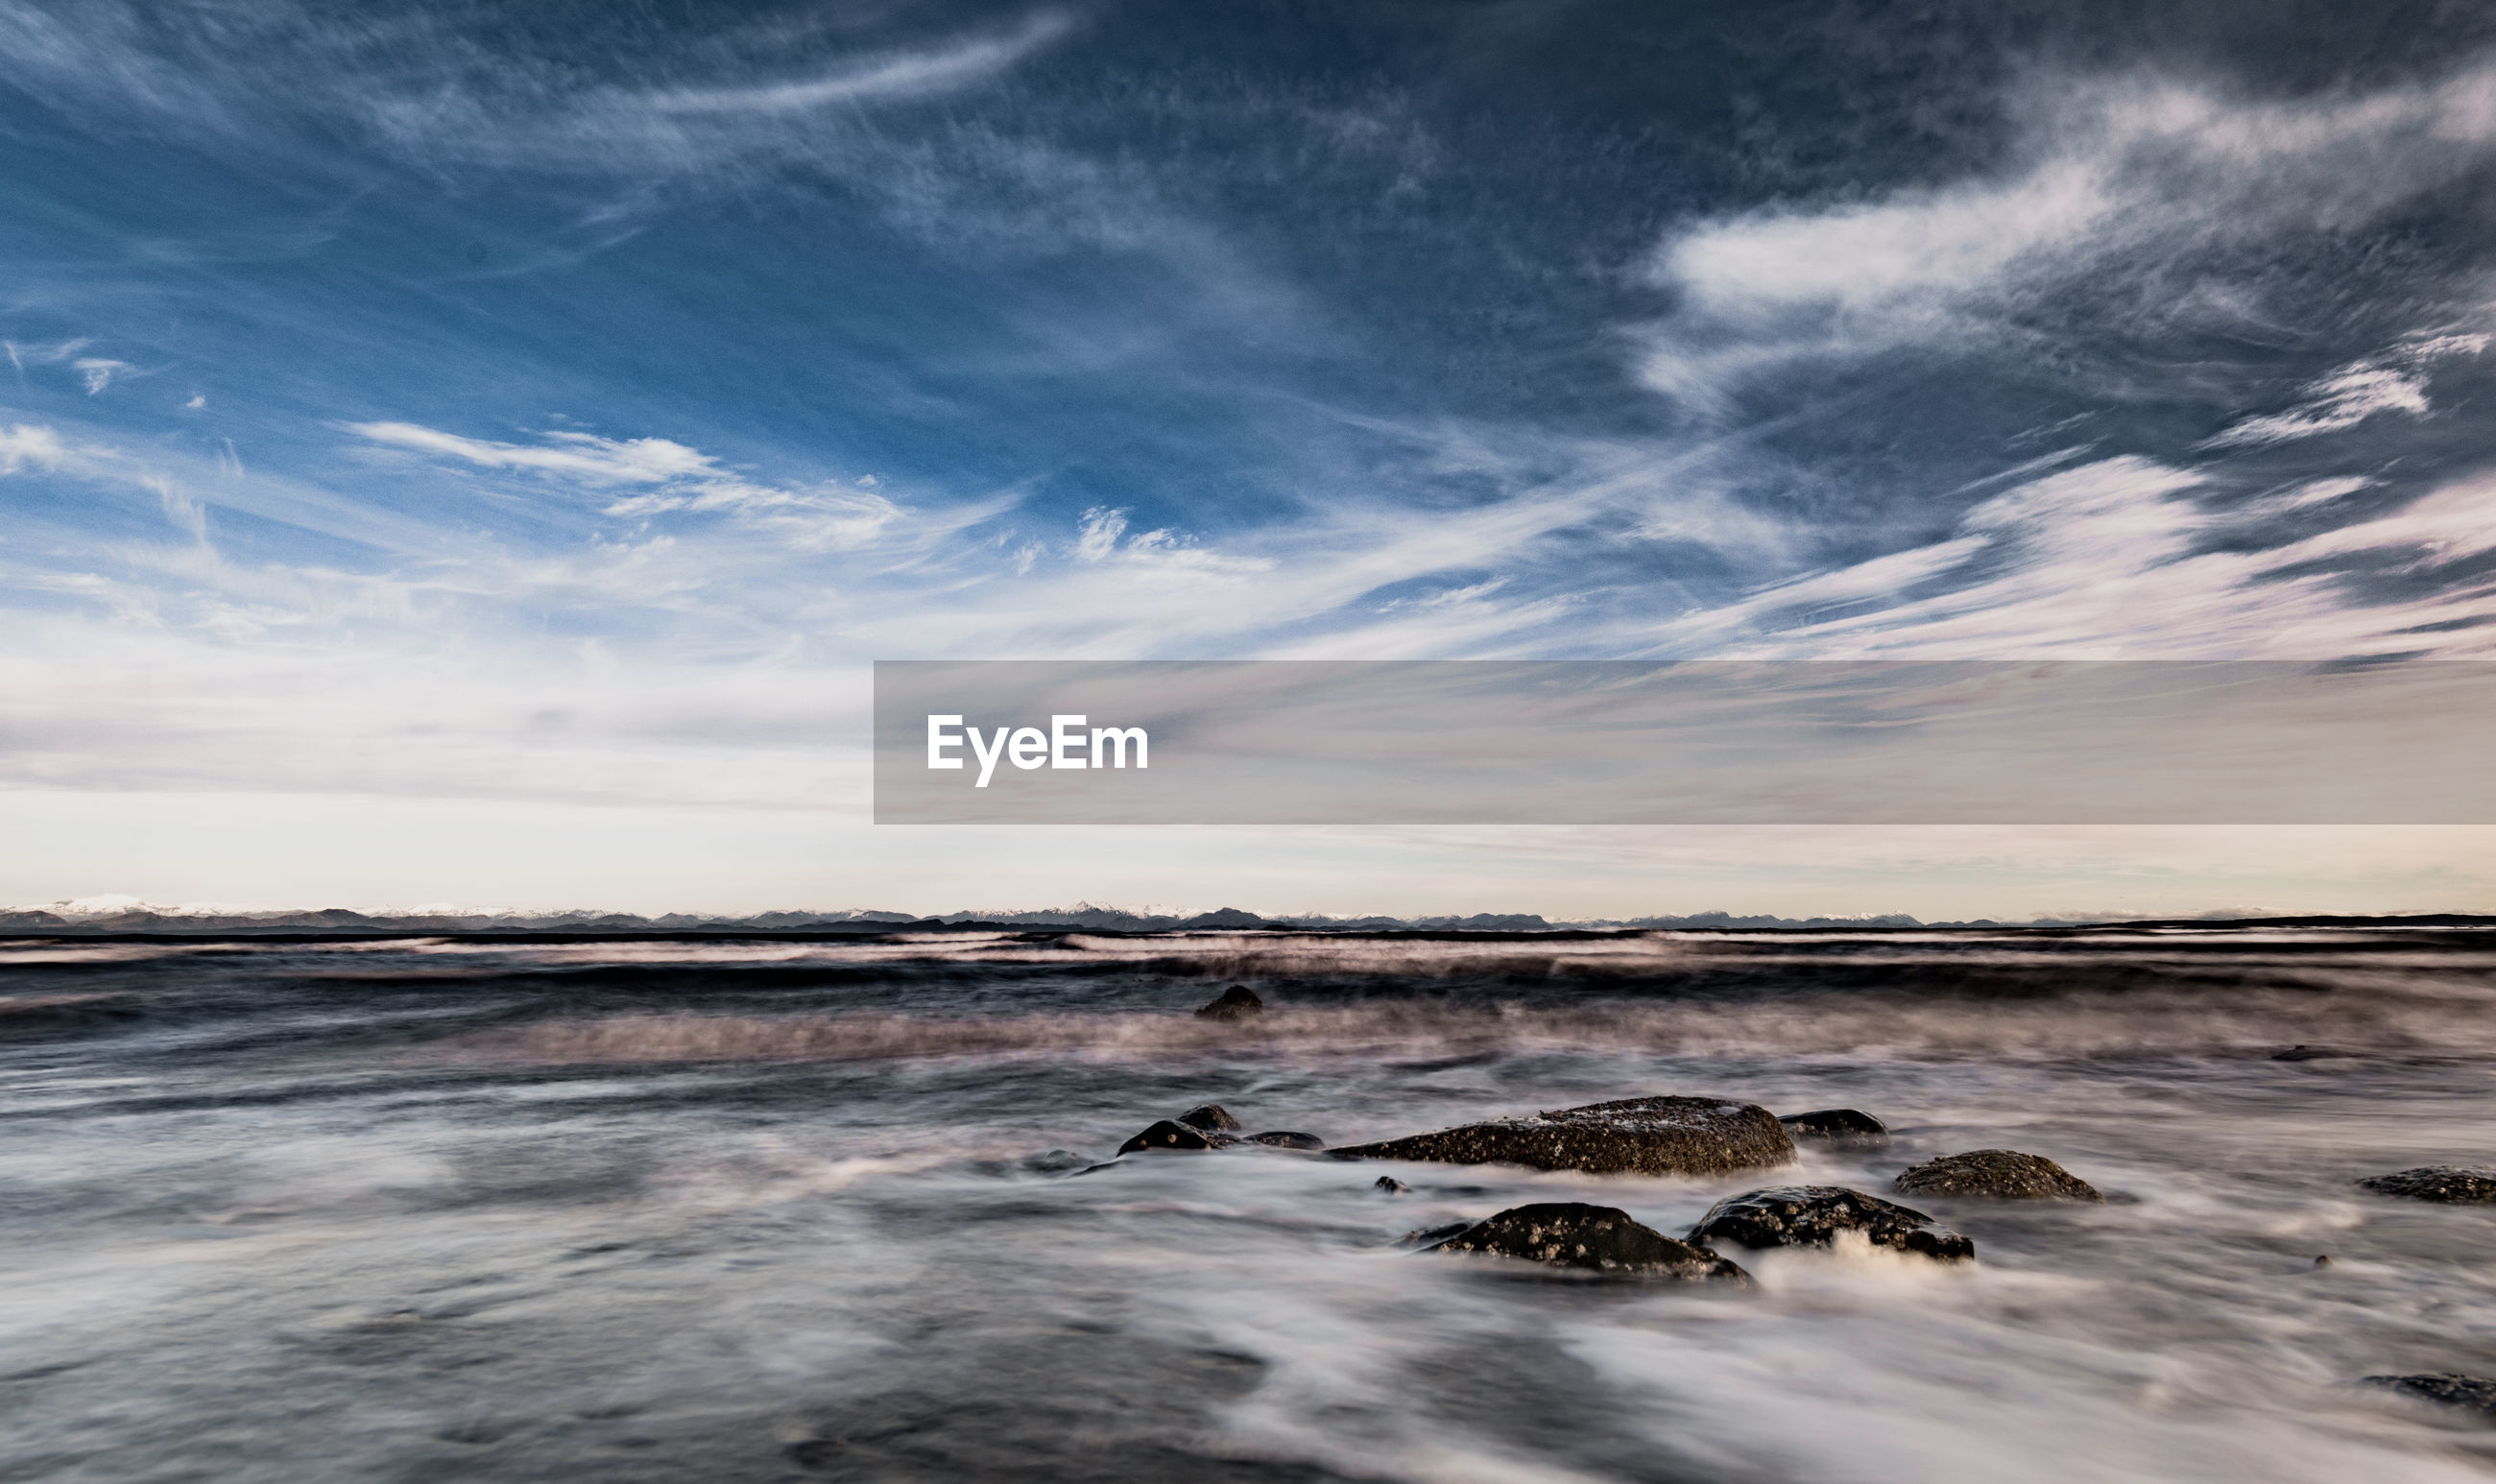 SCENIC VIEW OF ROCKS ON SEA AGAINST SKY